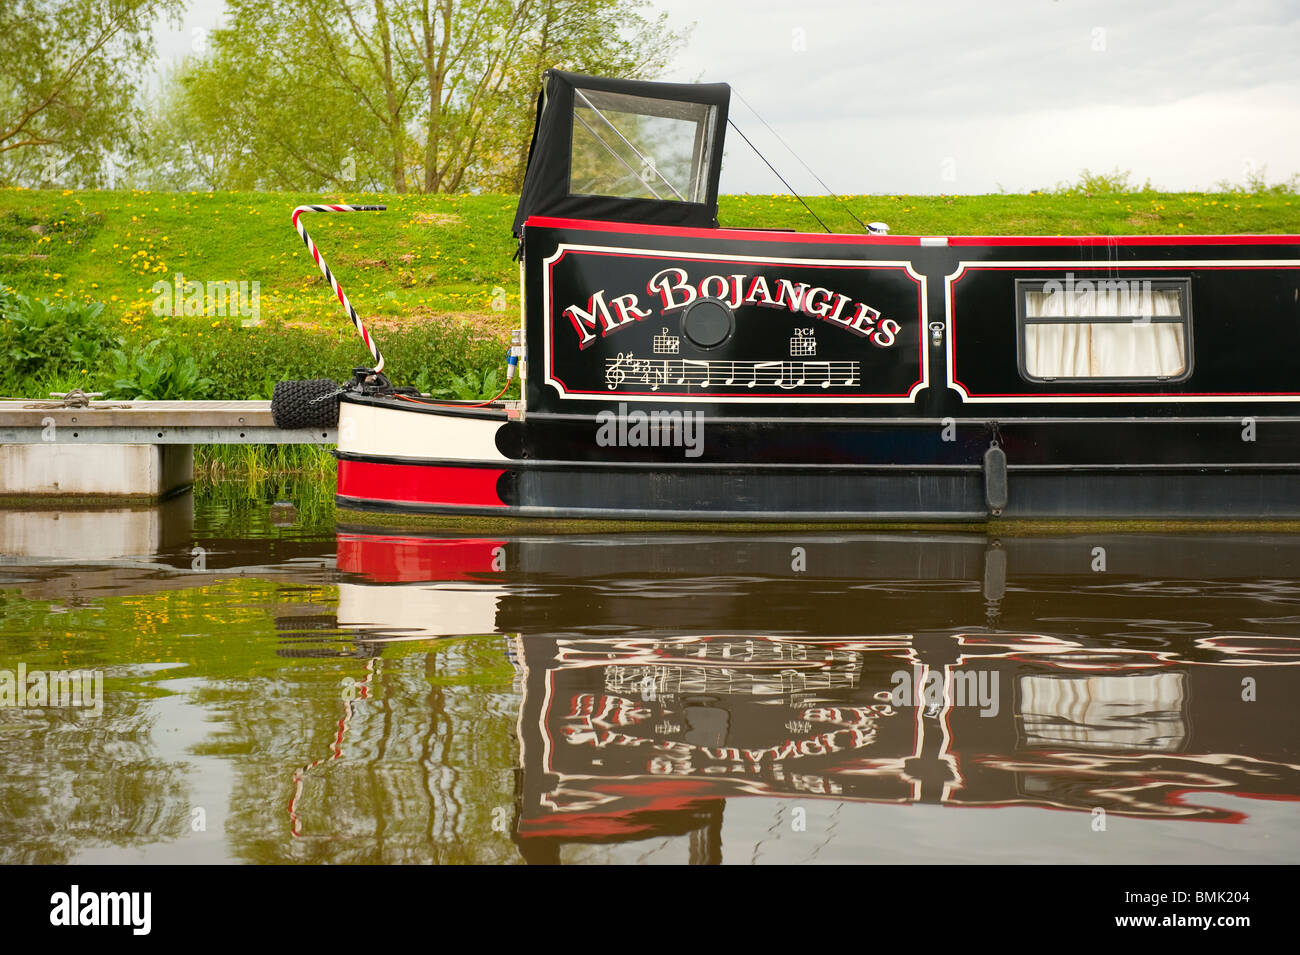 Canal Notes Stock Photos & Canal Notes Stock Images - Alamy